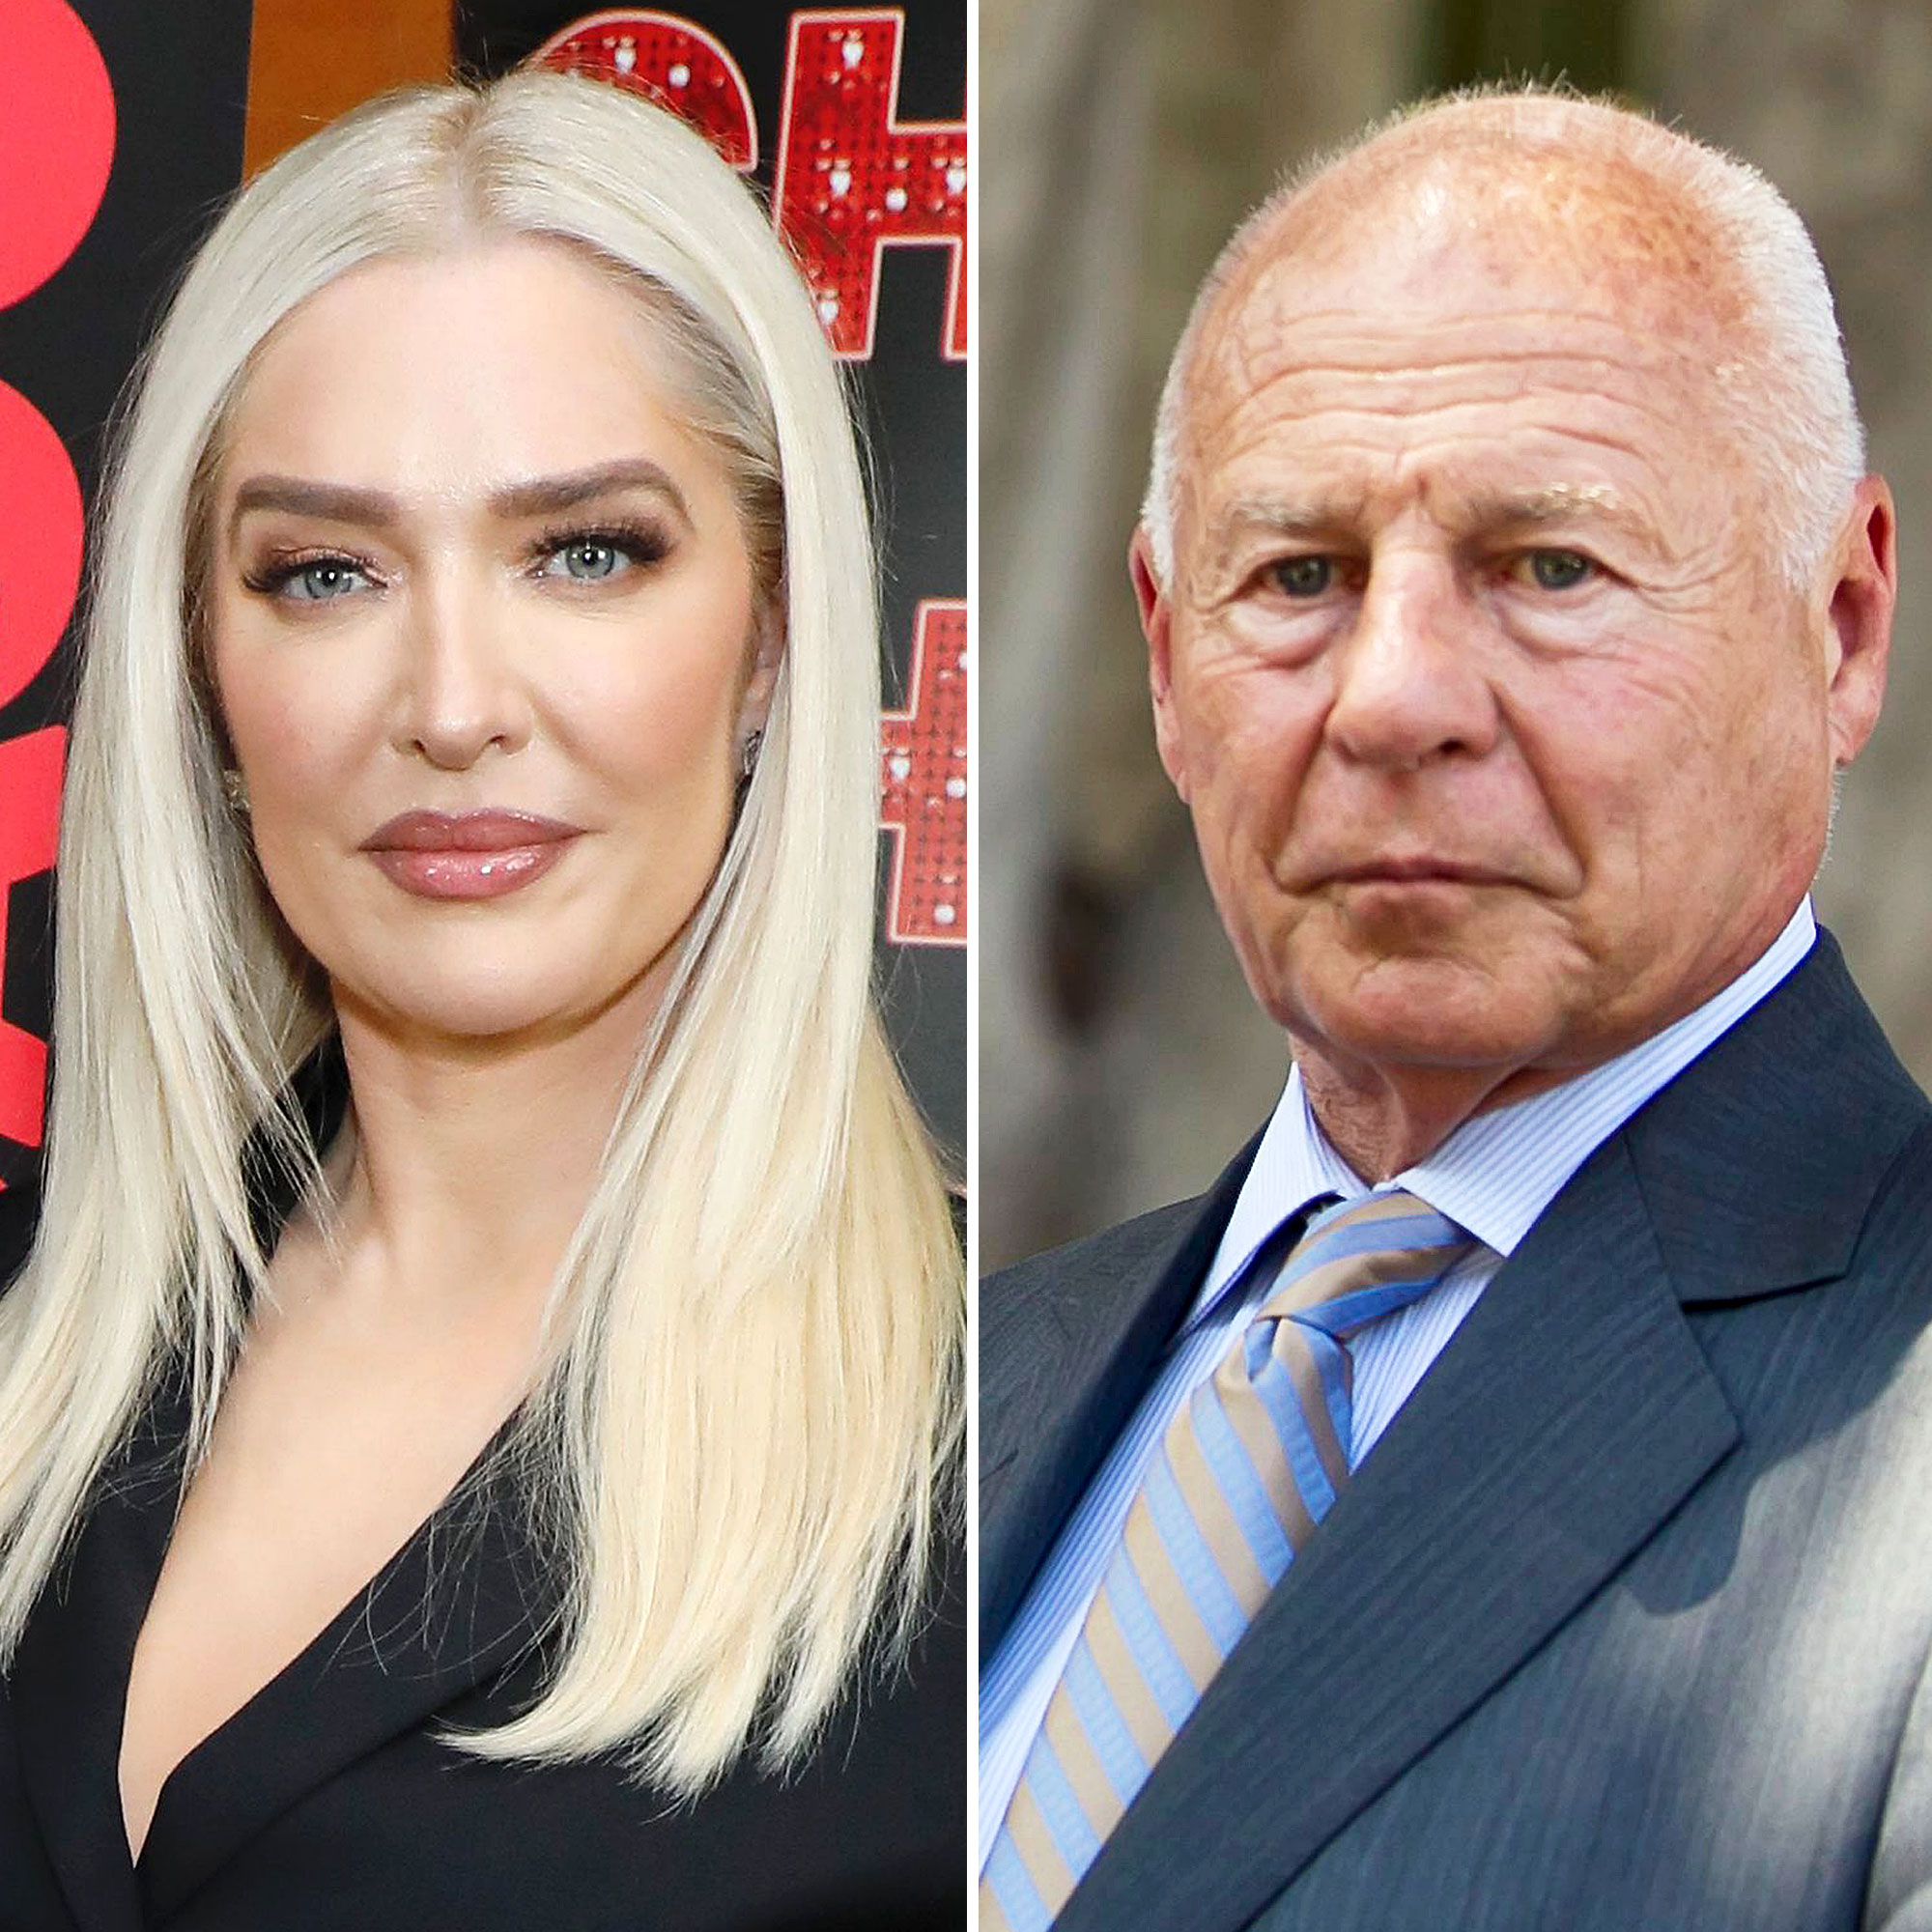 RHOBH's Erika Jayne and Tom Girardi's Divorce: Everything We Know